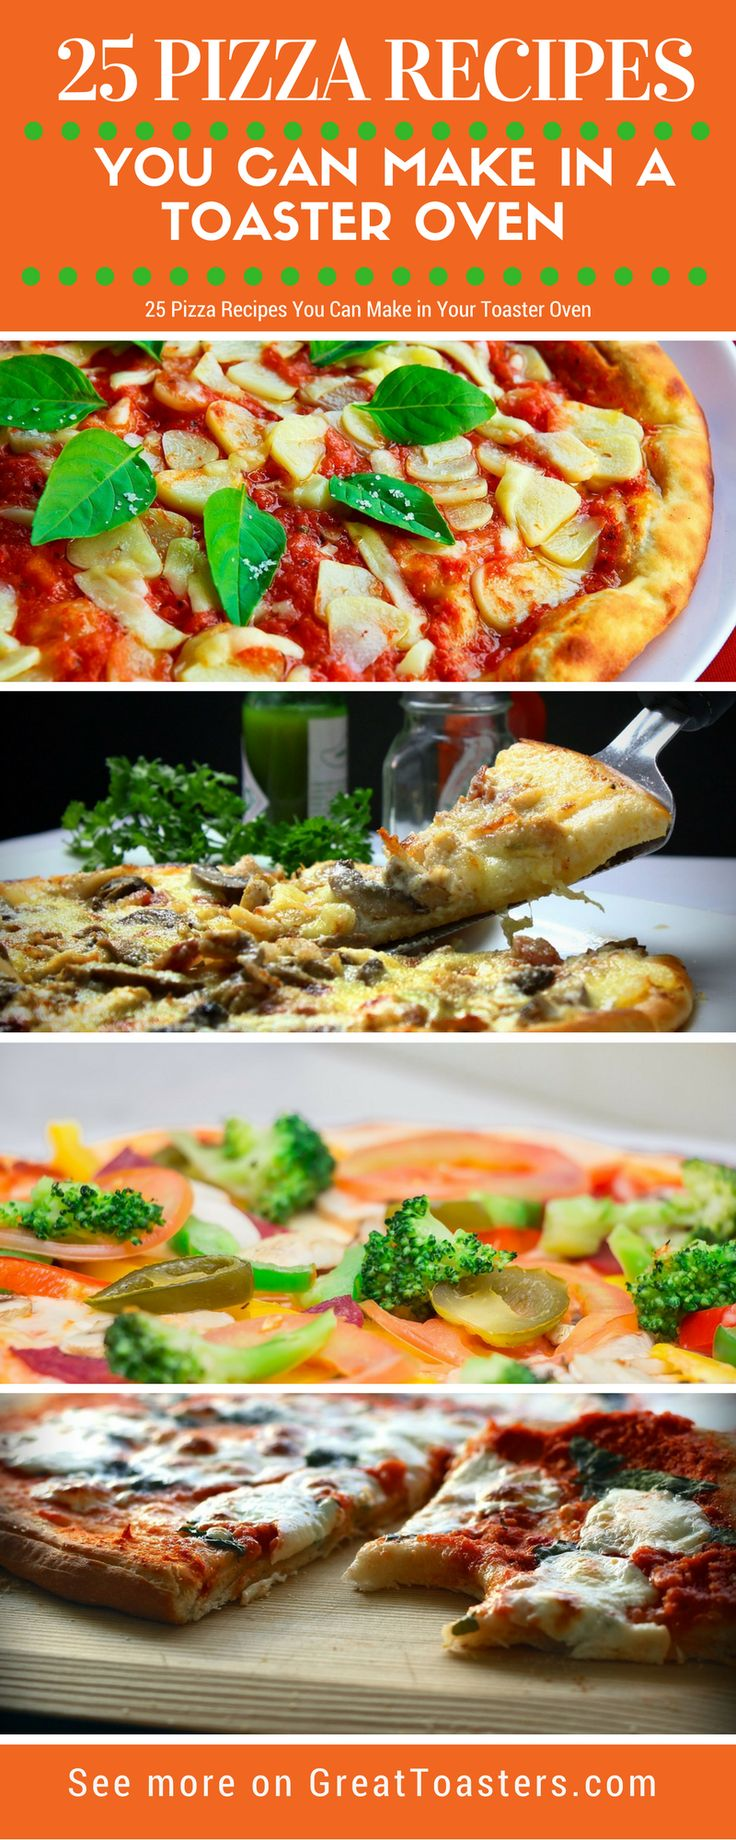 The 25+ Best Toaster Oven Recipes Ideas On Pinterest  Toaster Oven Meals,  Easy Oven Recipes And Oven Recipes